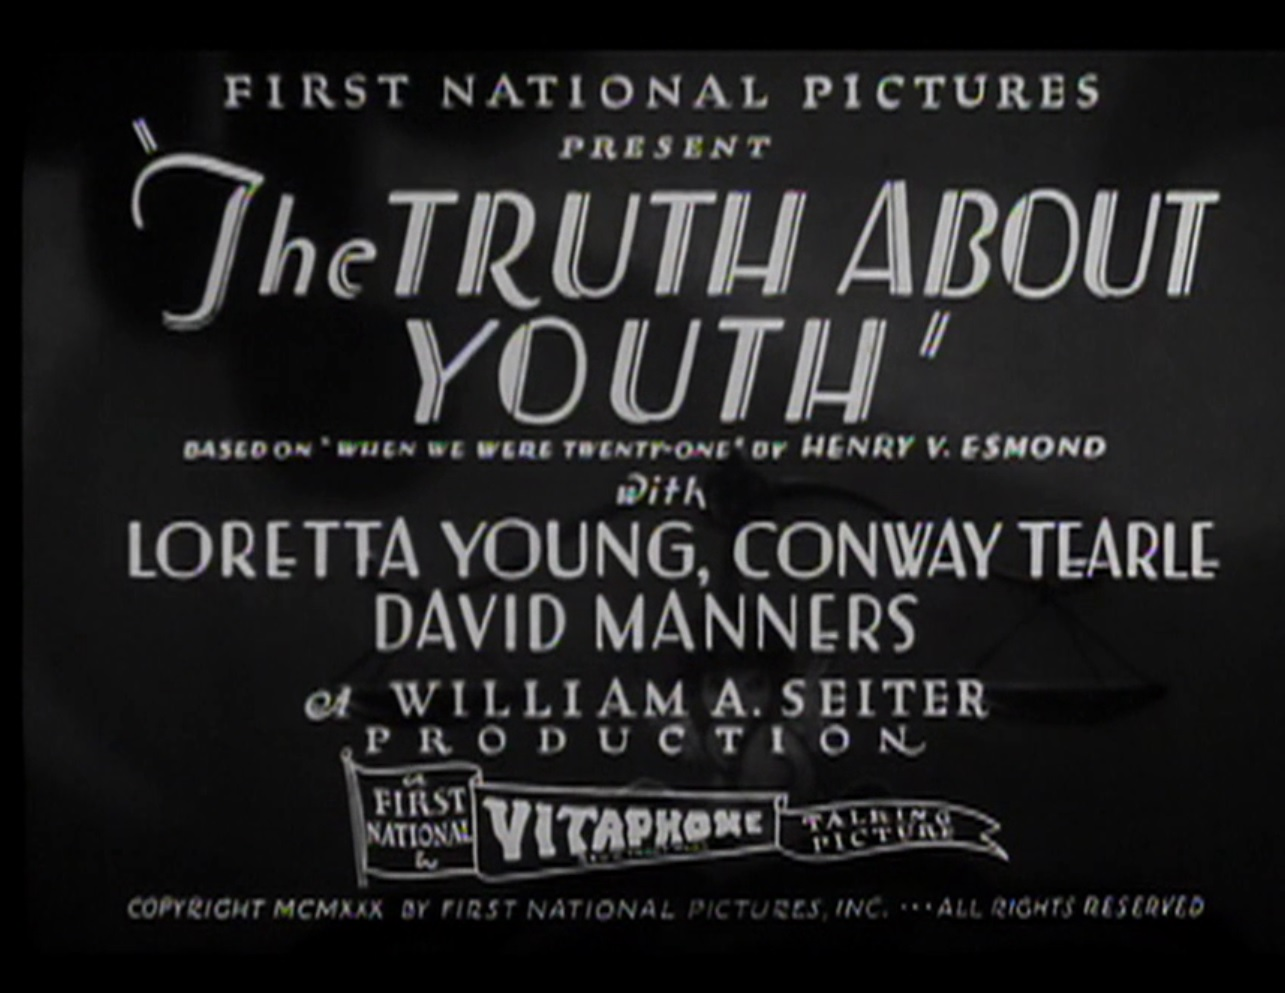 truthaboutyouth